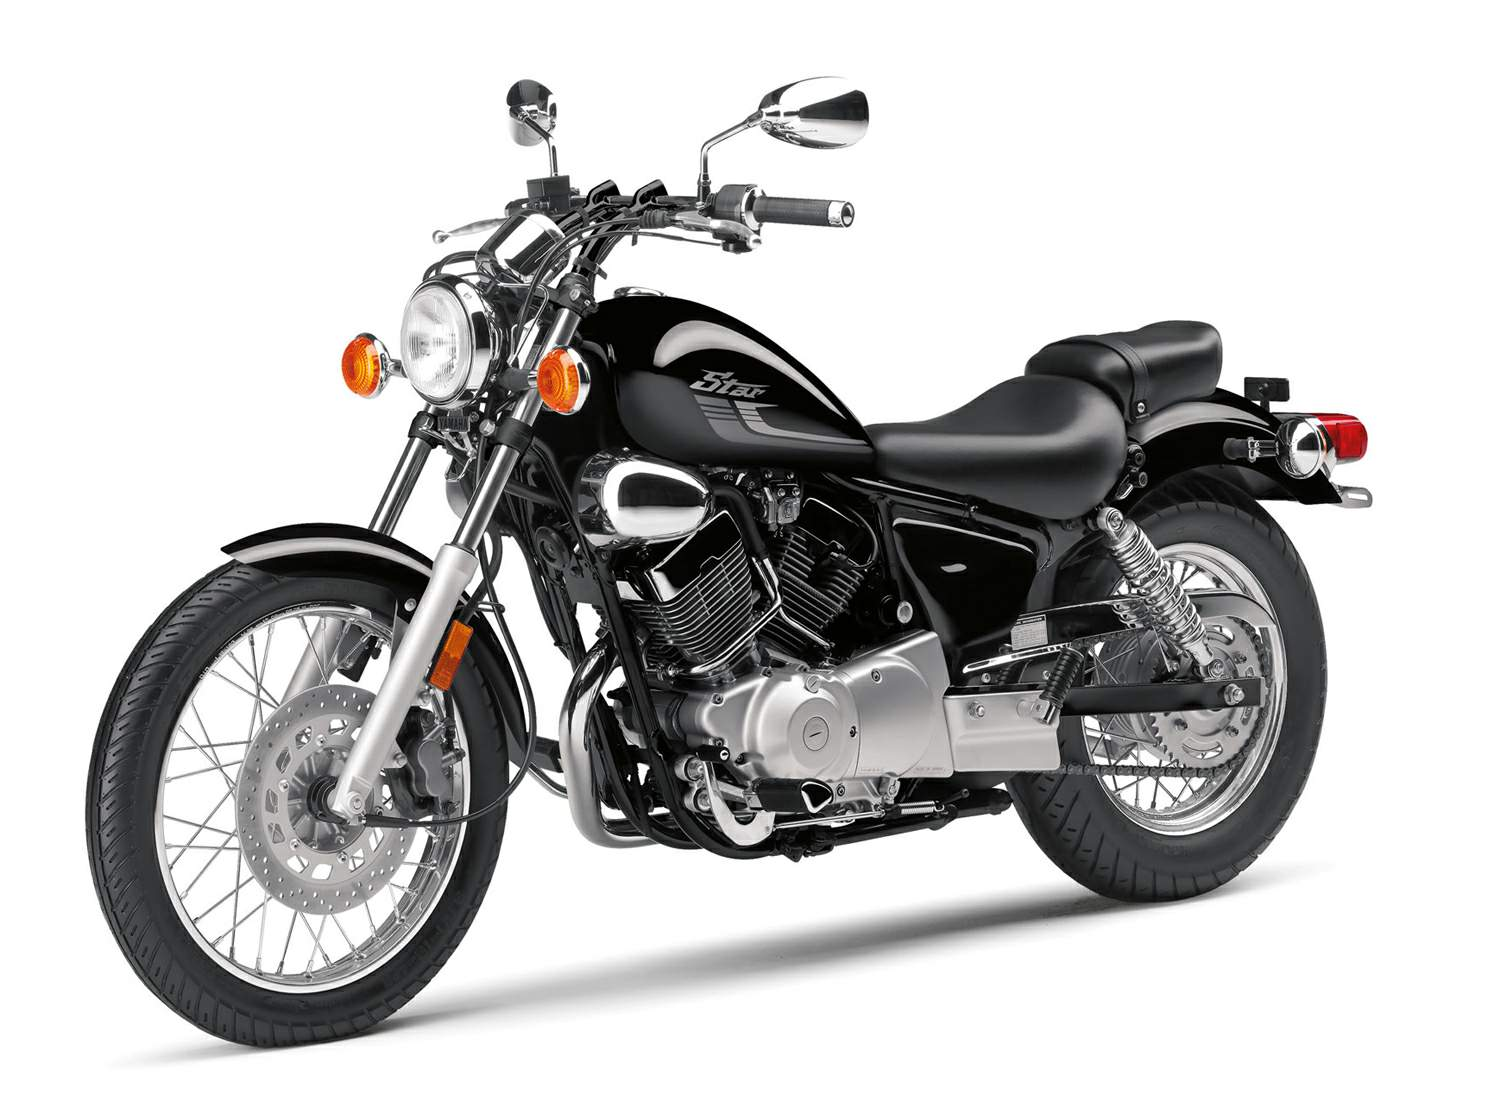 Yamaha XVS 250 V-Star For Sale Specifications, Price and Images